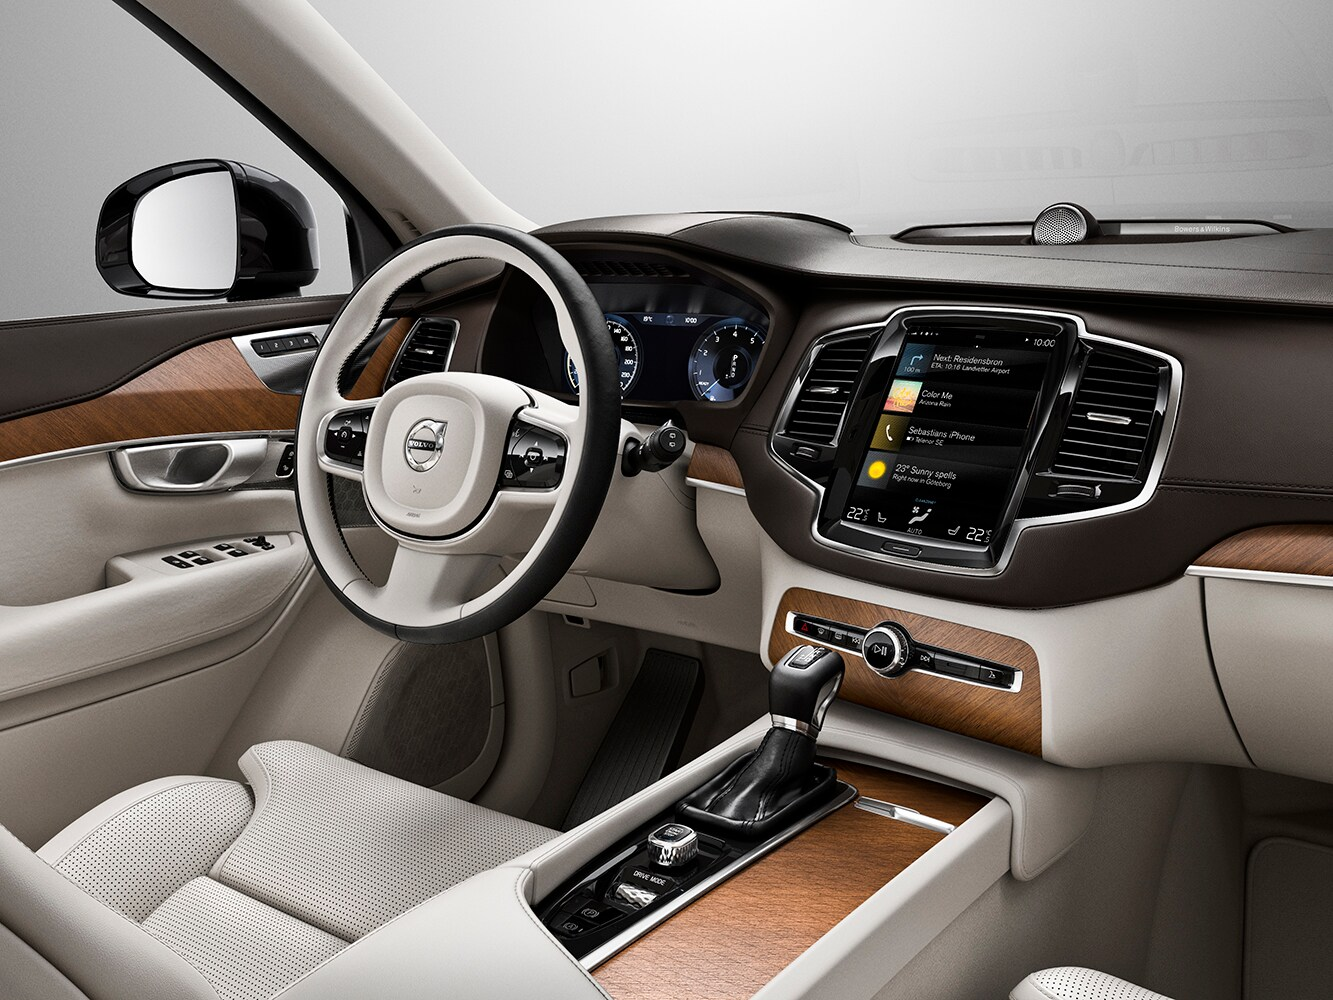 Interior view showing North American linear walnut trim inside the Volvo XC90 Inscription